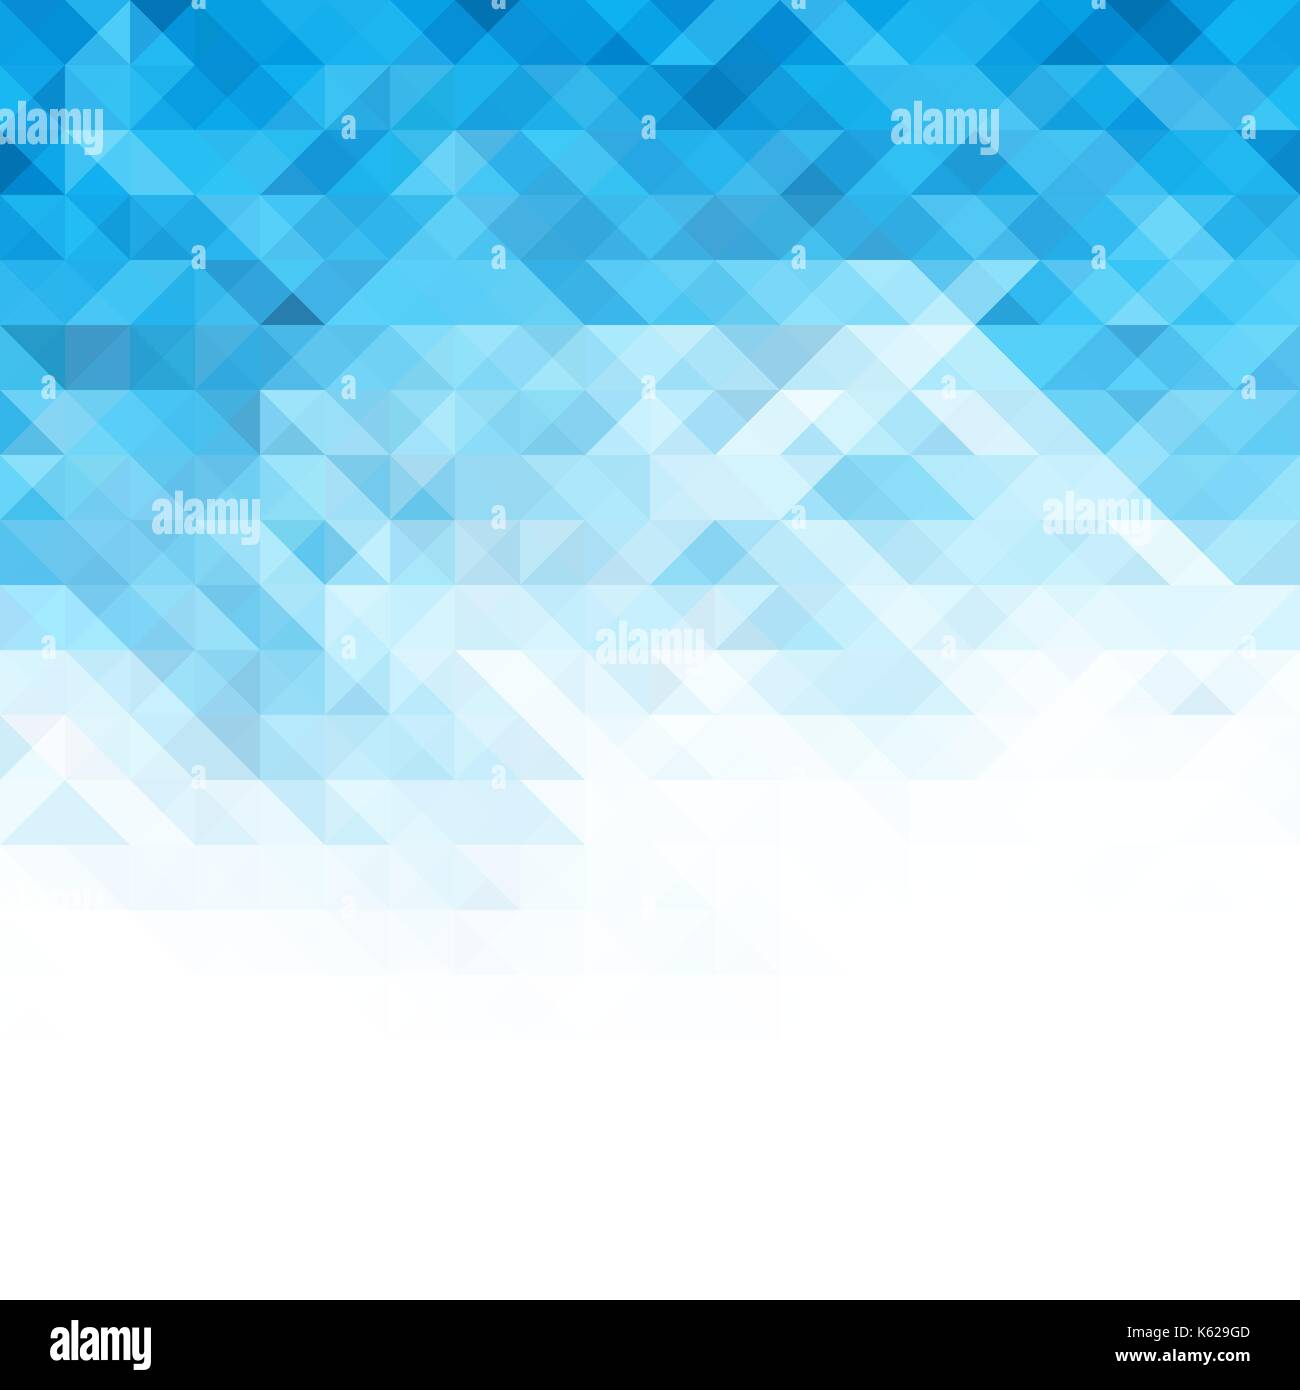 vector abstract geometric background. blue mosaic template